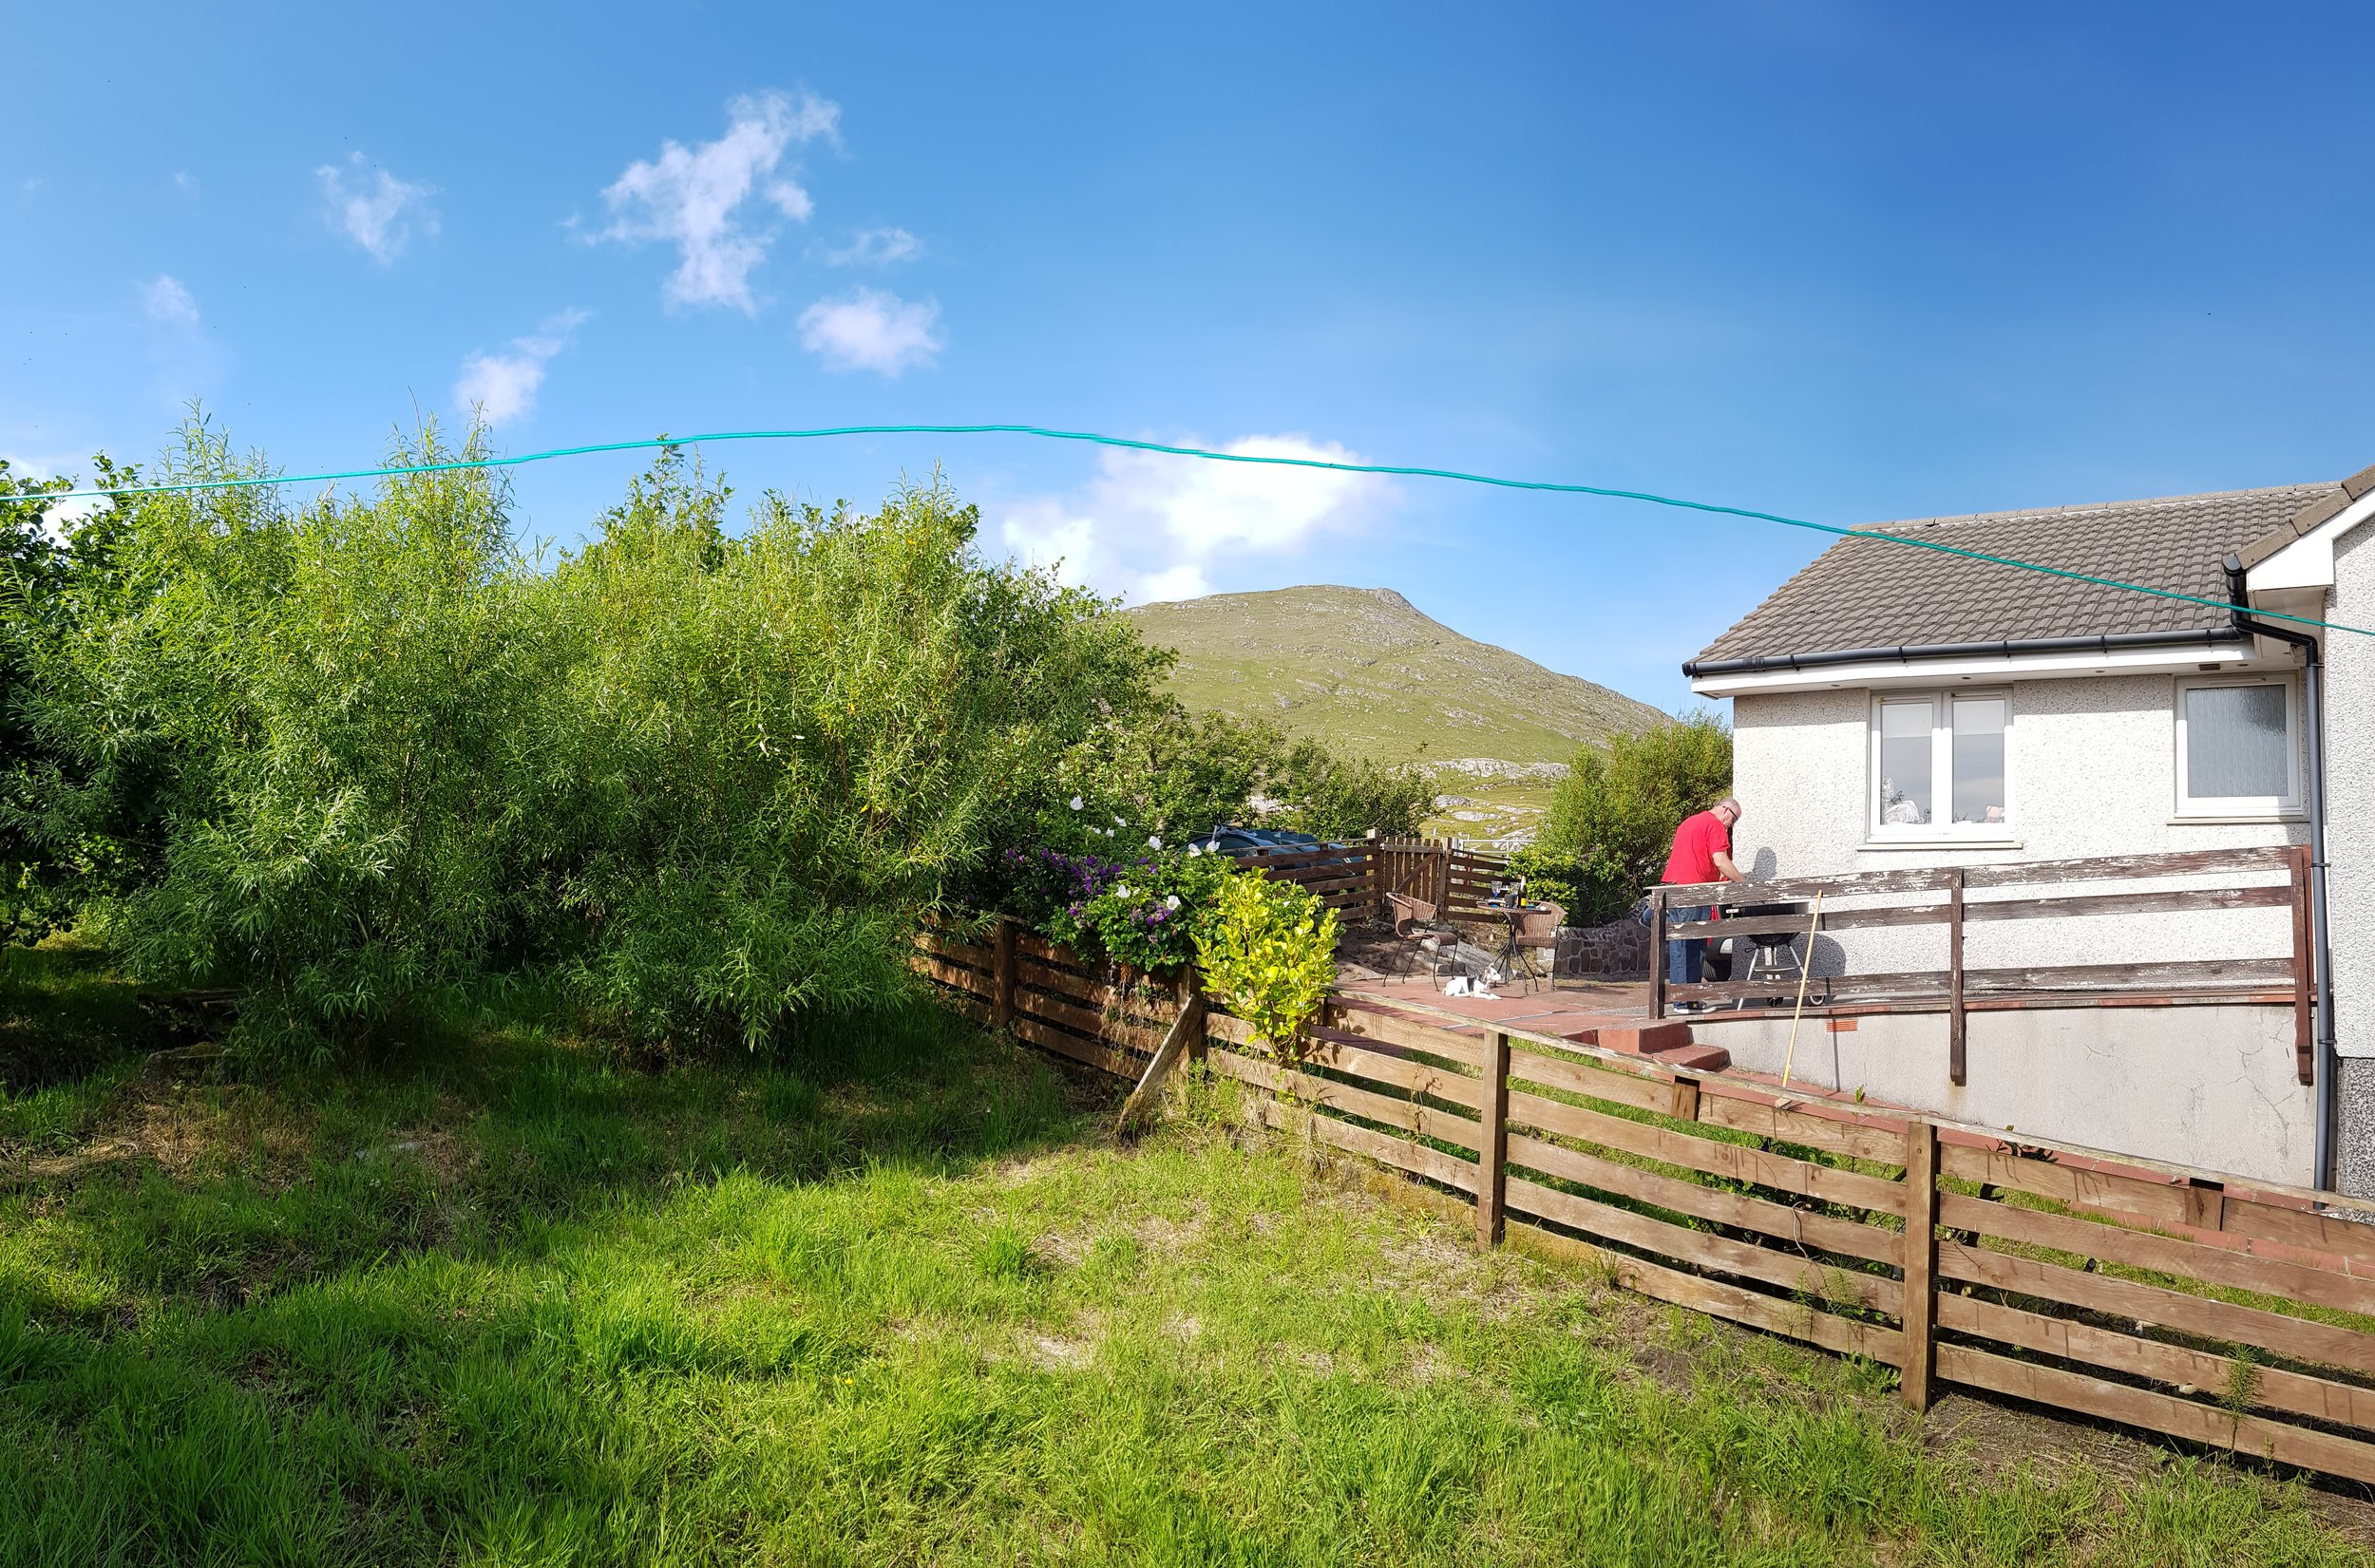 Wonky clothes line, due to panorama picture, but you get the idea! Ben Heaval in the background.